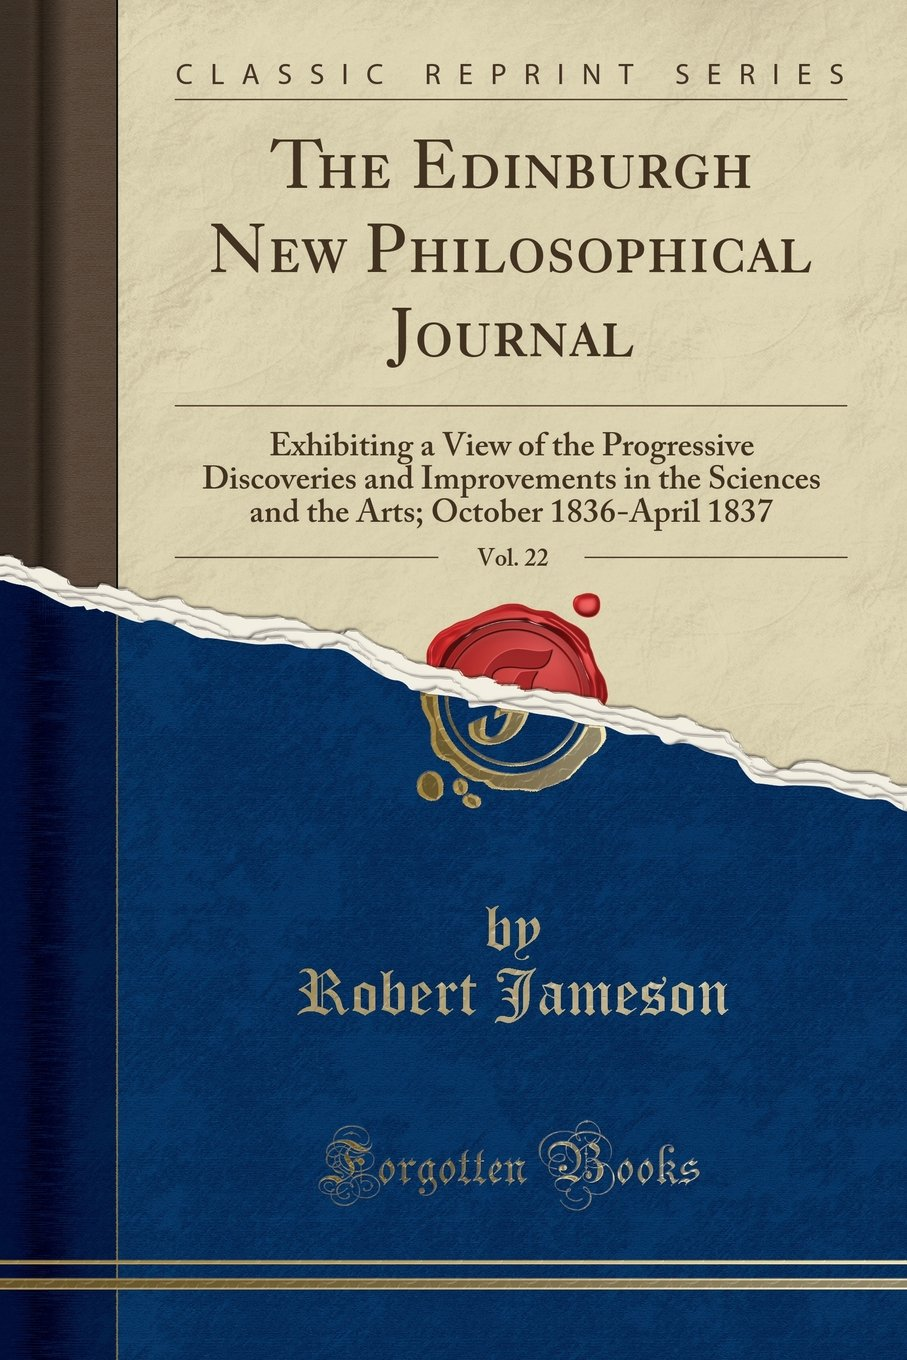 Download The Edinburgh New Philosophical Journal, Vol. 22: Exhibiting a View of the Progressive Discoveries and Improvements in the Sciences and the Arts; October 1836-April 1837 (Classic Reprint) ebook